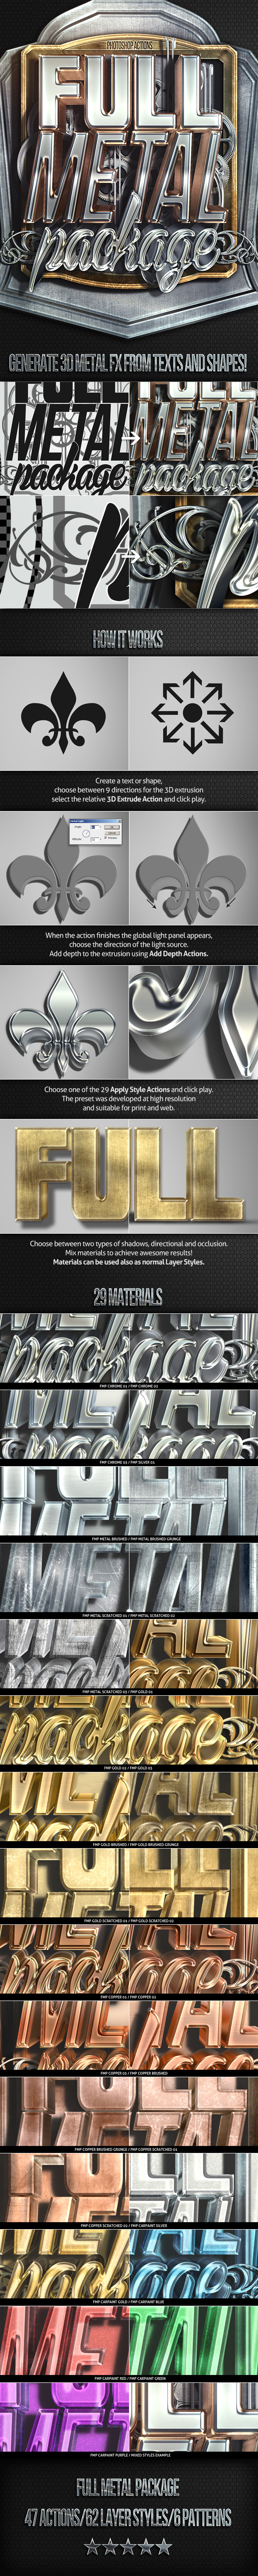 Full Metal Package 3D Photoshop Actions